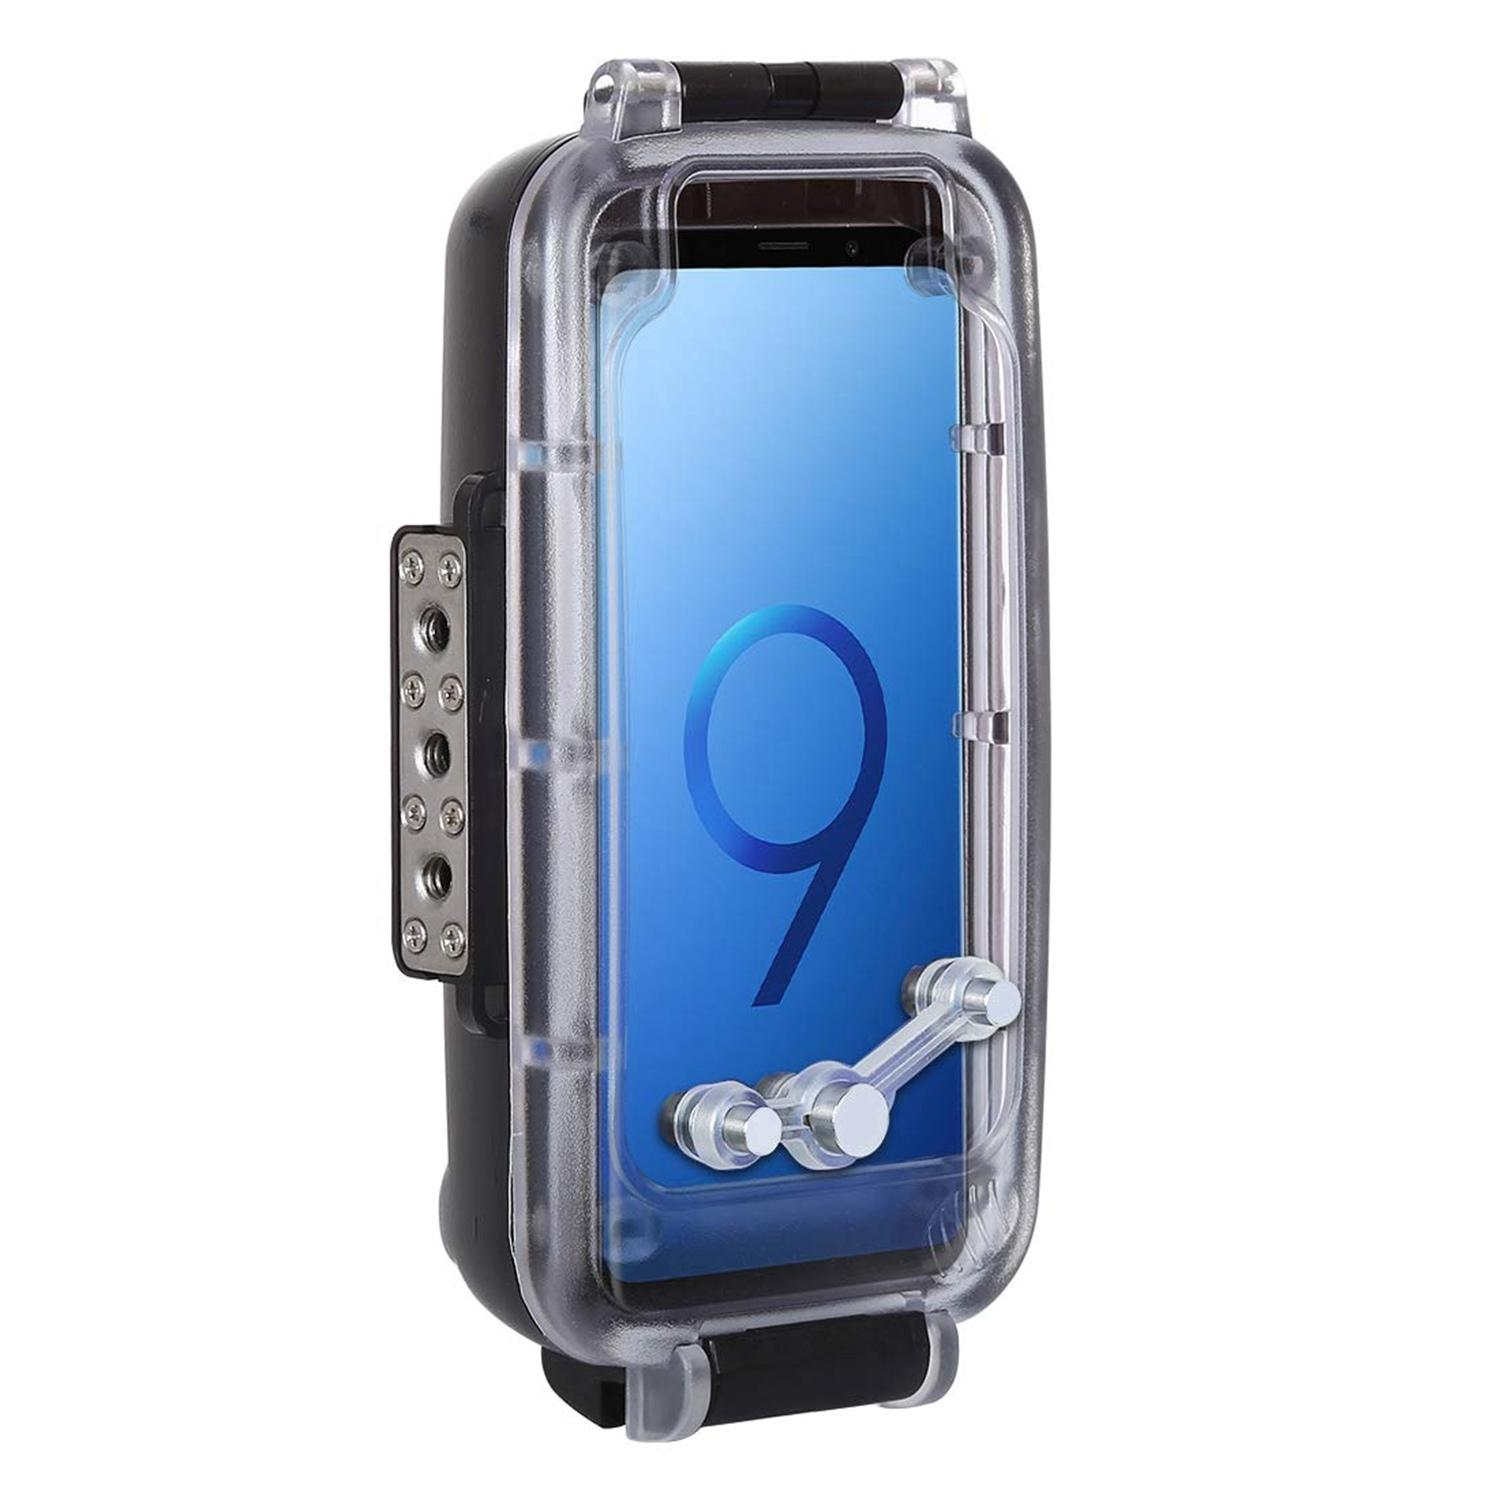 Puluz 40M / 130Ft Smartphone Waterproof Case For Samsung Galaxy S9 Deep Sea Diving Case Support Shockproof Snowproof Dirtproof Ip68 Protective Underwater Housing